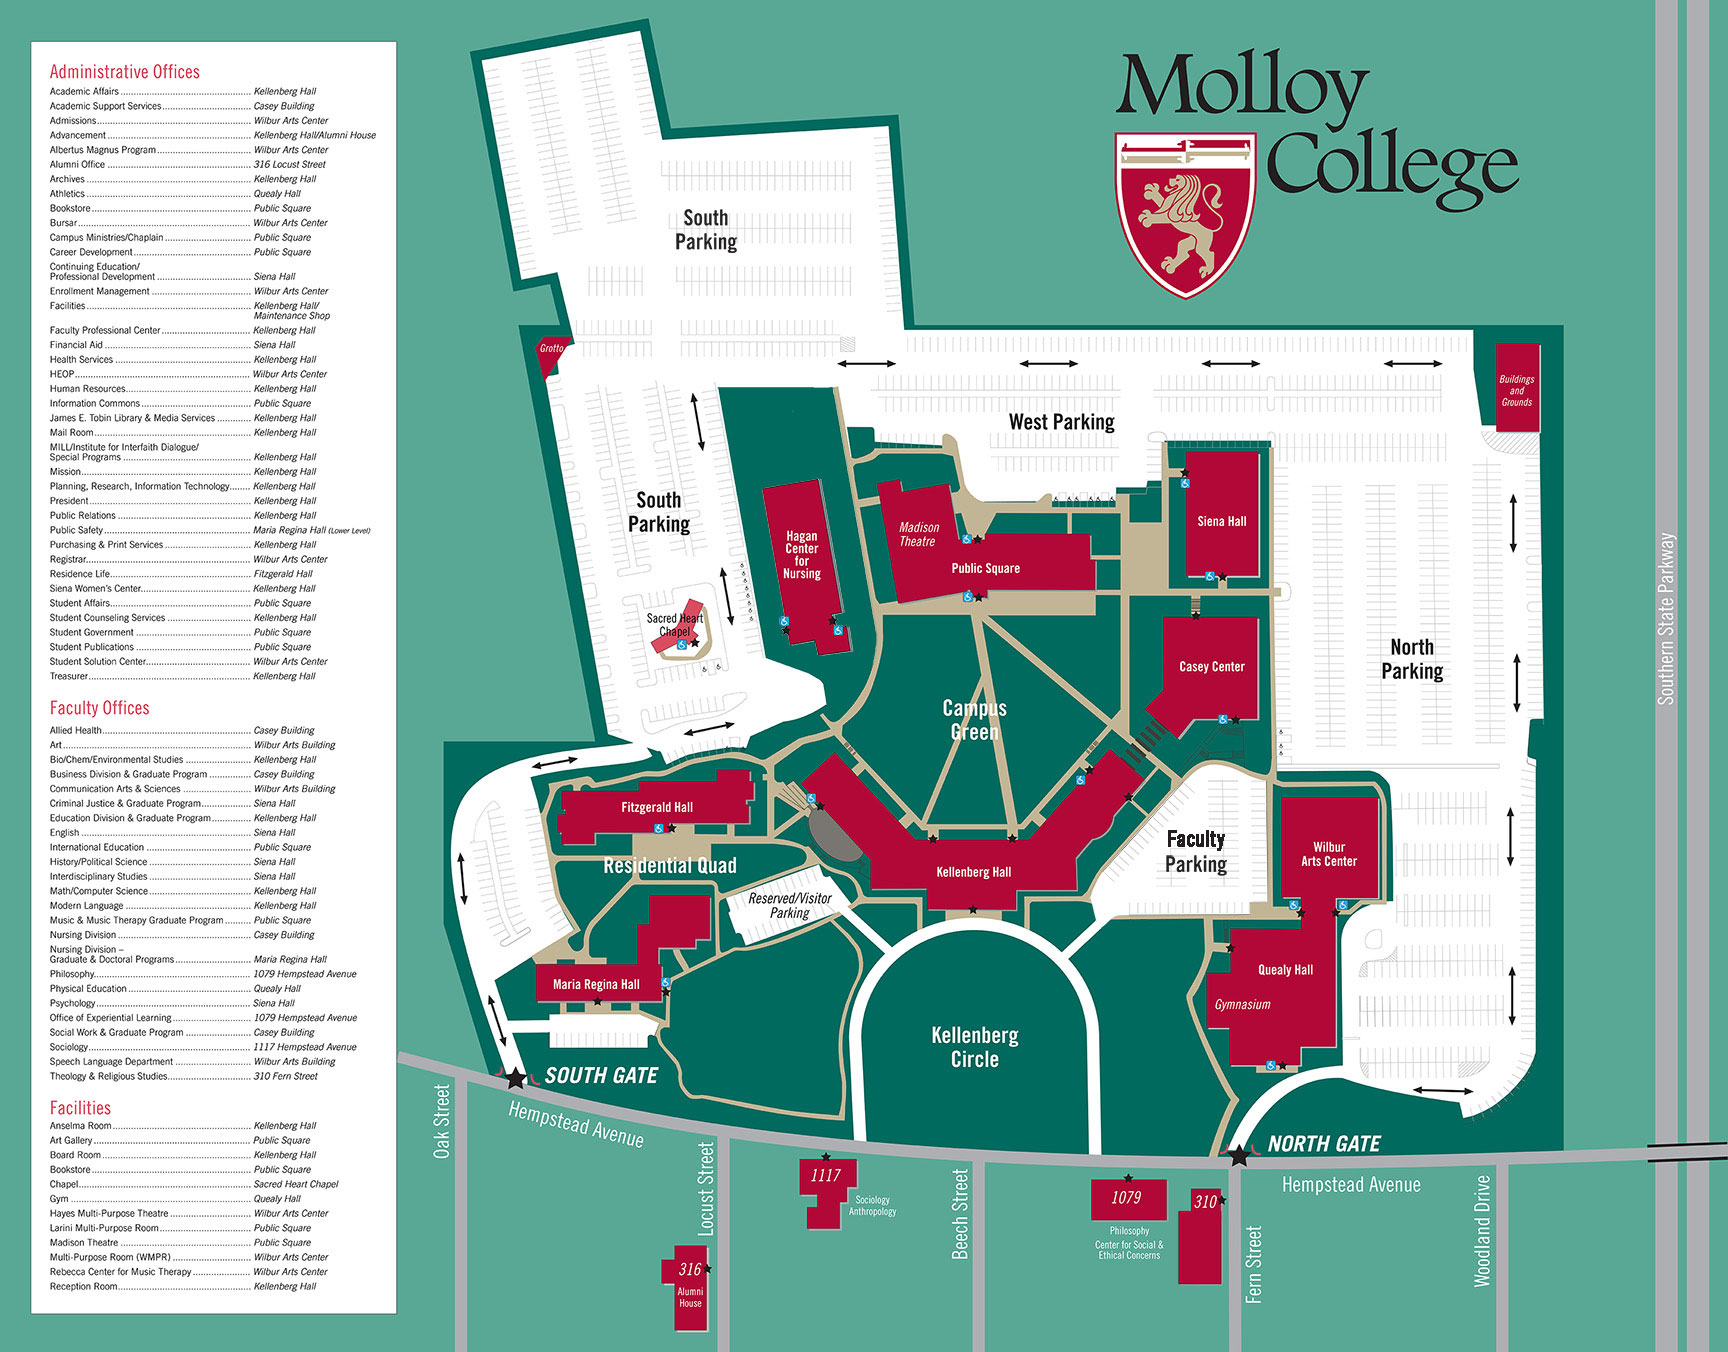 Molloy College: Molloy Campus Map on union university campus, university of limerick campus, hastings university campus, swansea university campus, glasgow university campus, leeds university campus, cardiff university campus, bradford university campus, durham university campus, hamilton university campus, lancaster university campus, university of london campus, university of derby campus, lawrence university campus, la trobe university campus, cambridge university campus, oxford university campus, college university campus, wellesley university campus, kettering university campus,